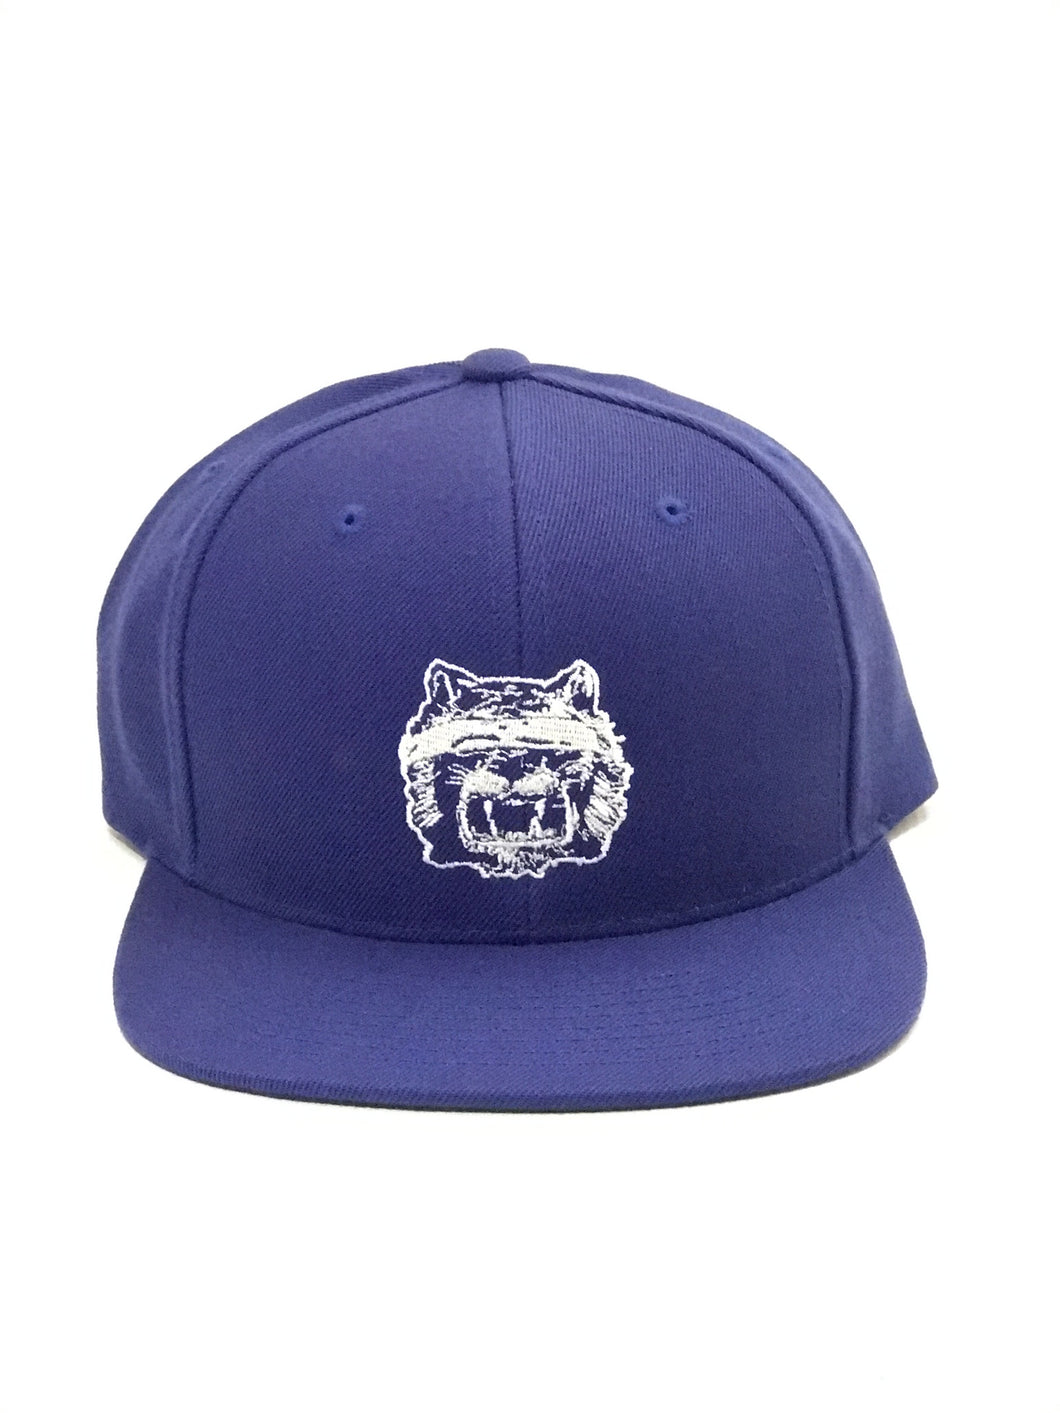 Blind Tiger Hat - Blue